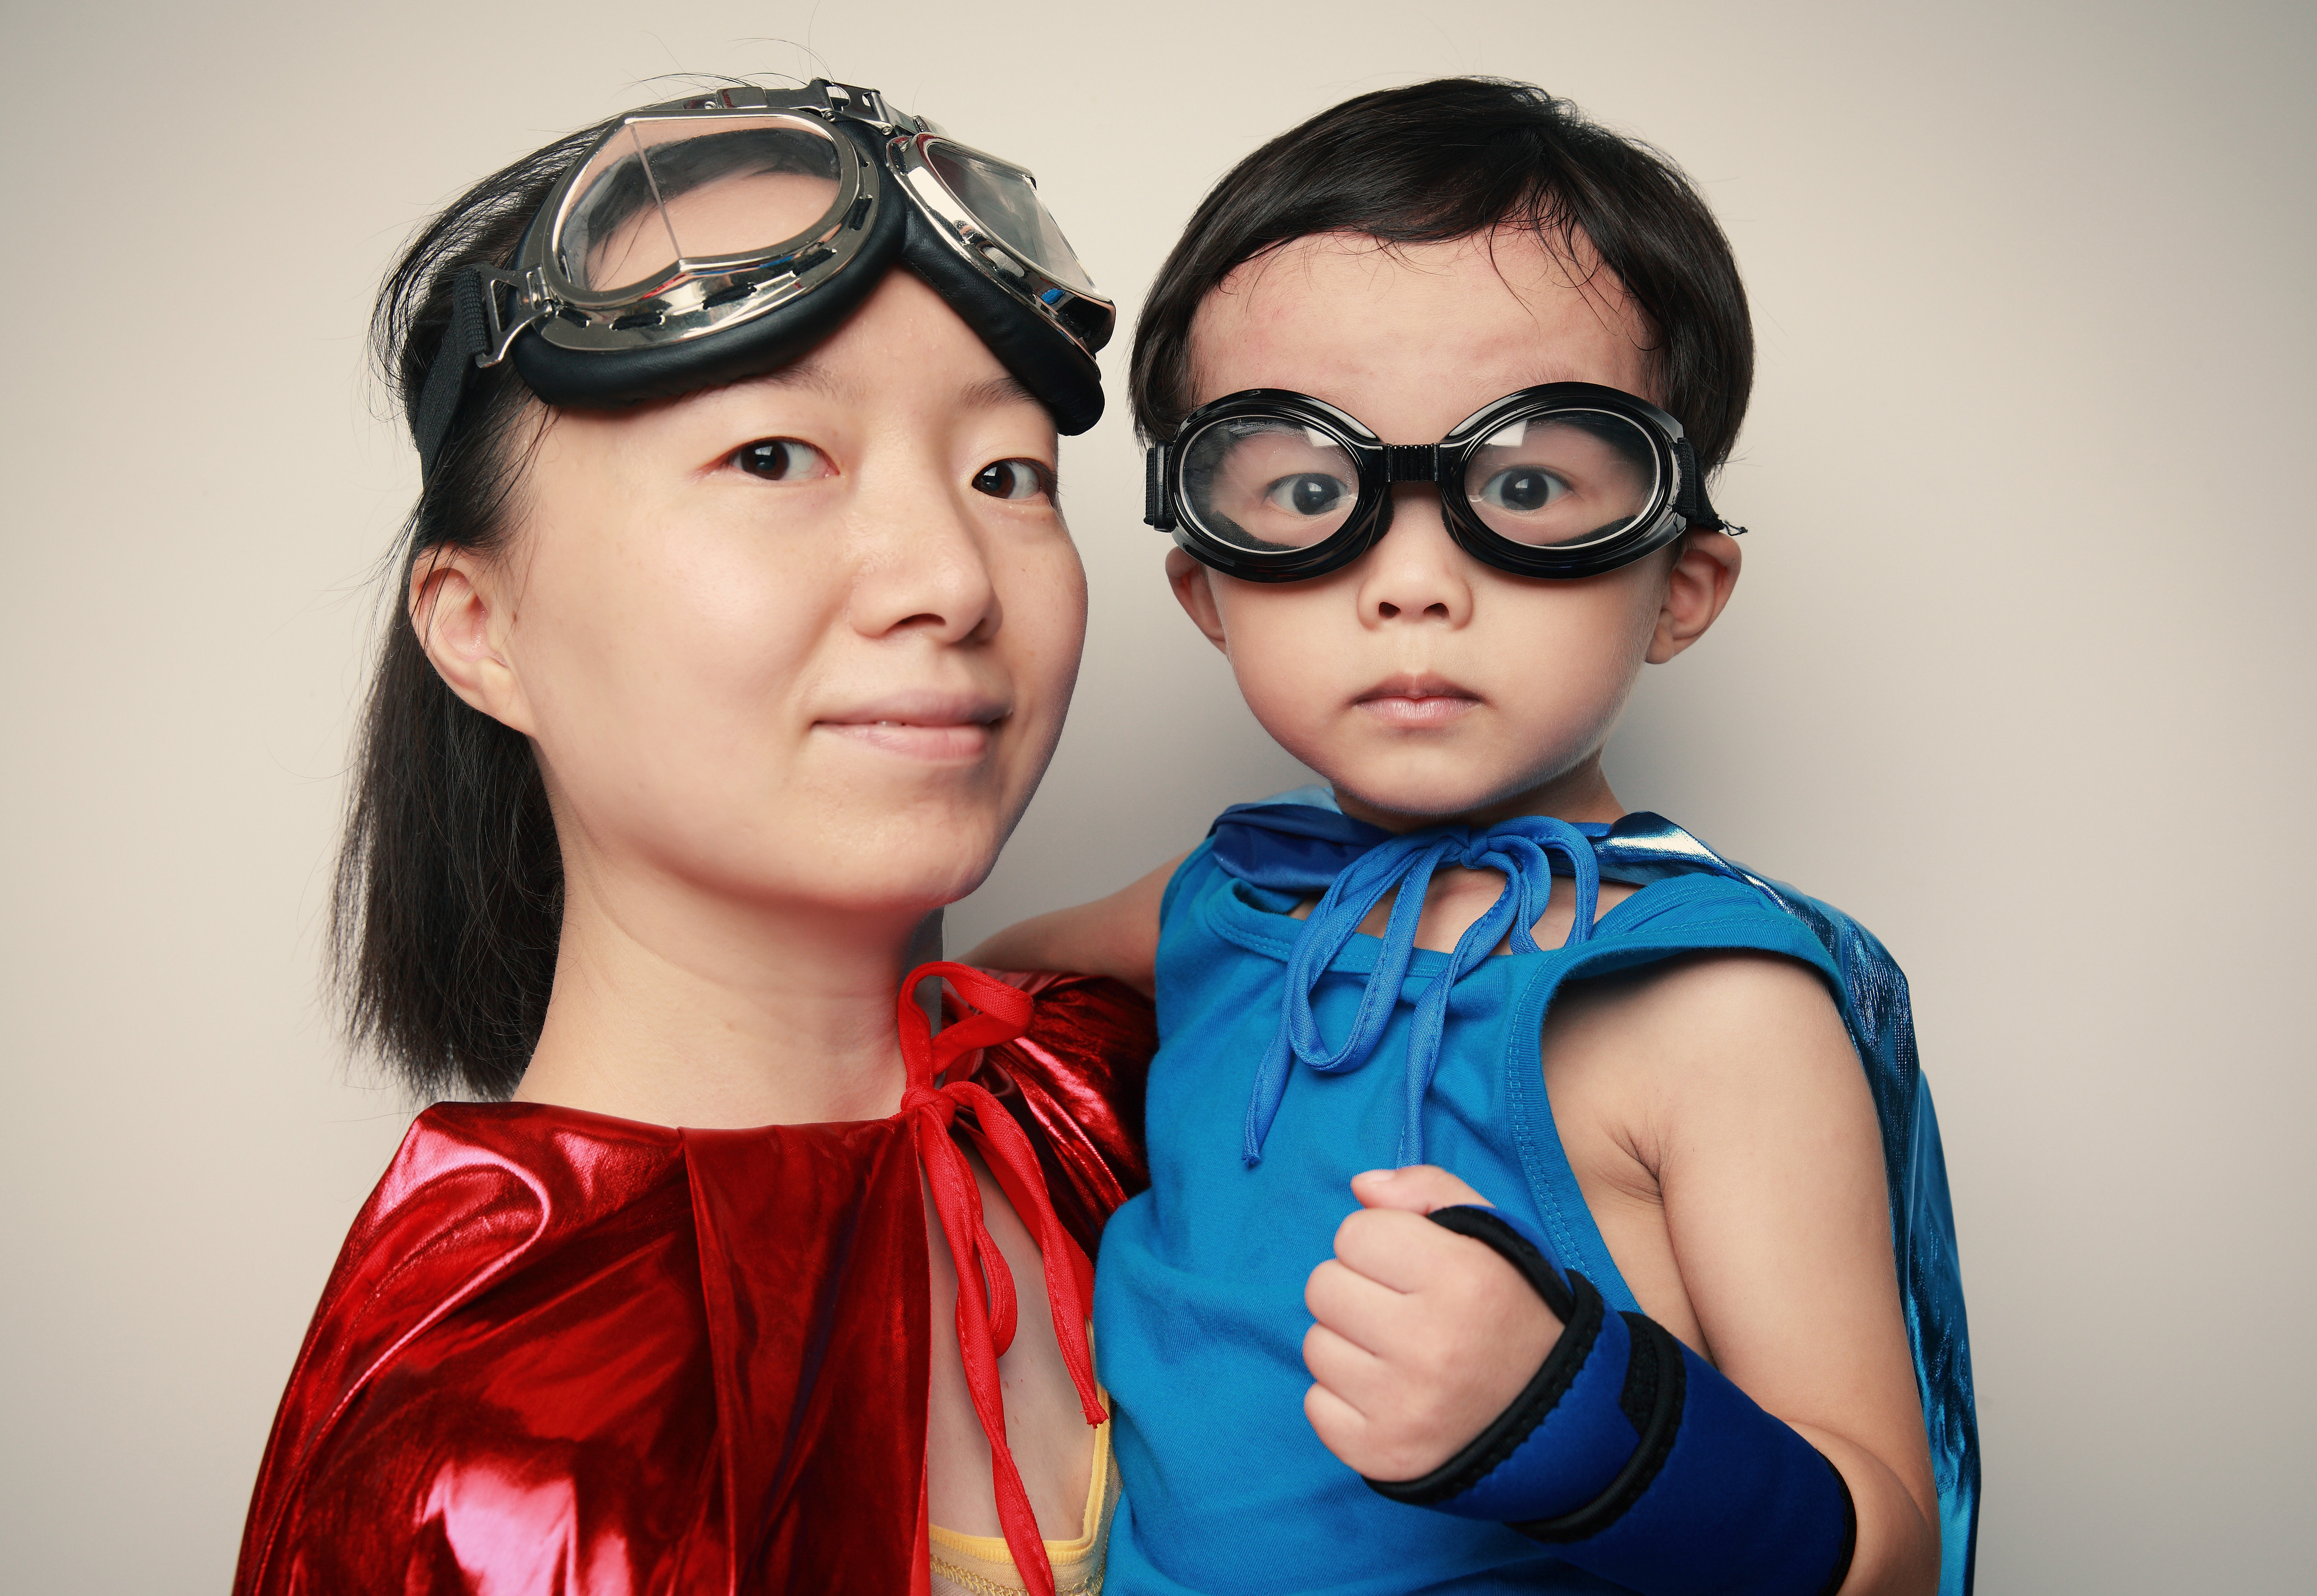 mother and son super hero costumes